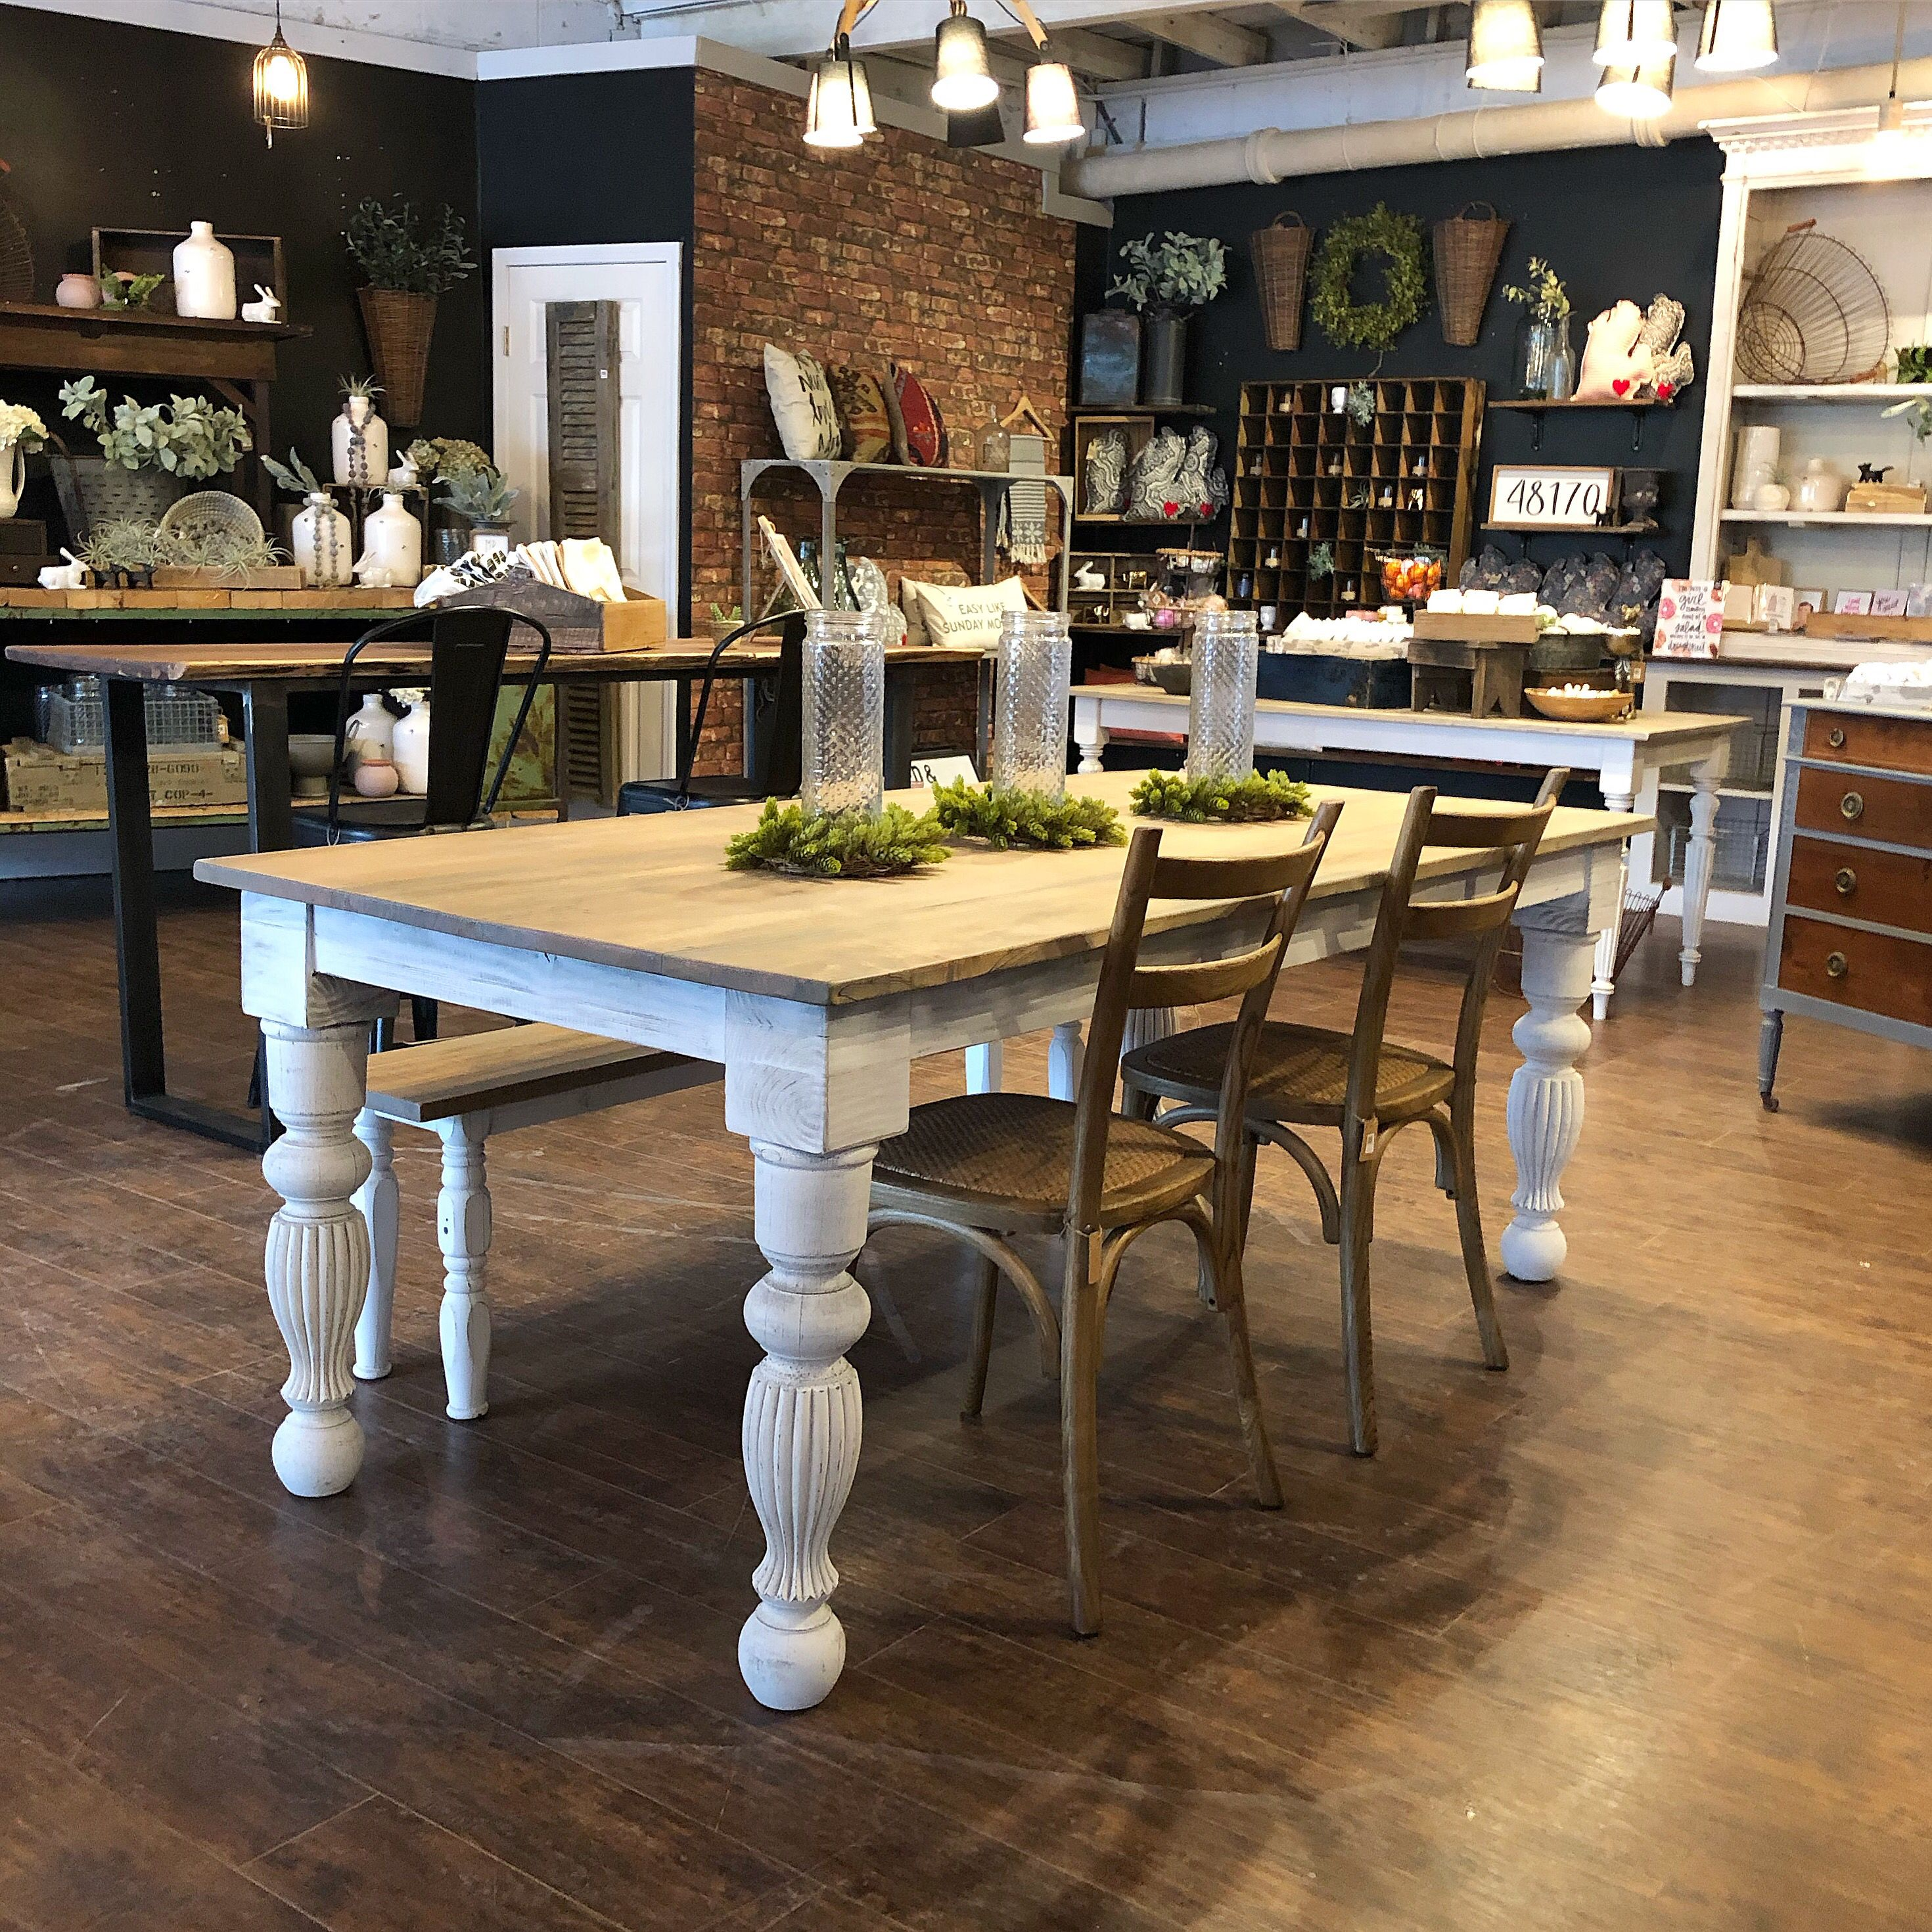 Modern Farmhouse Spindle Leg Table With Reclaimed Wood Top